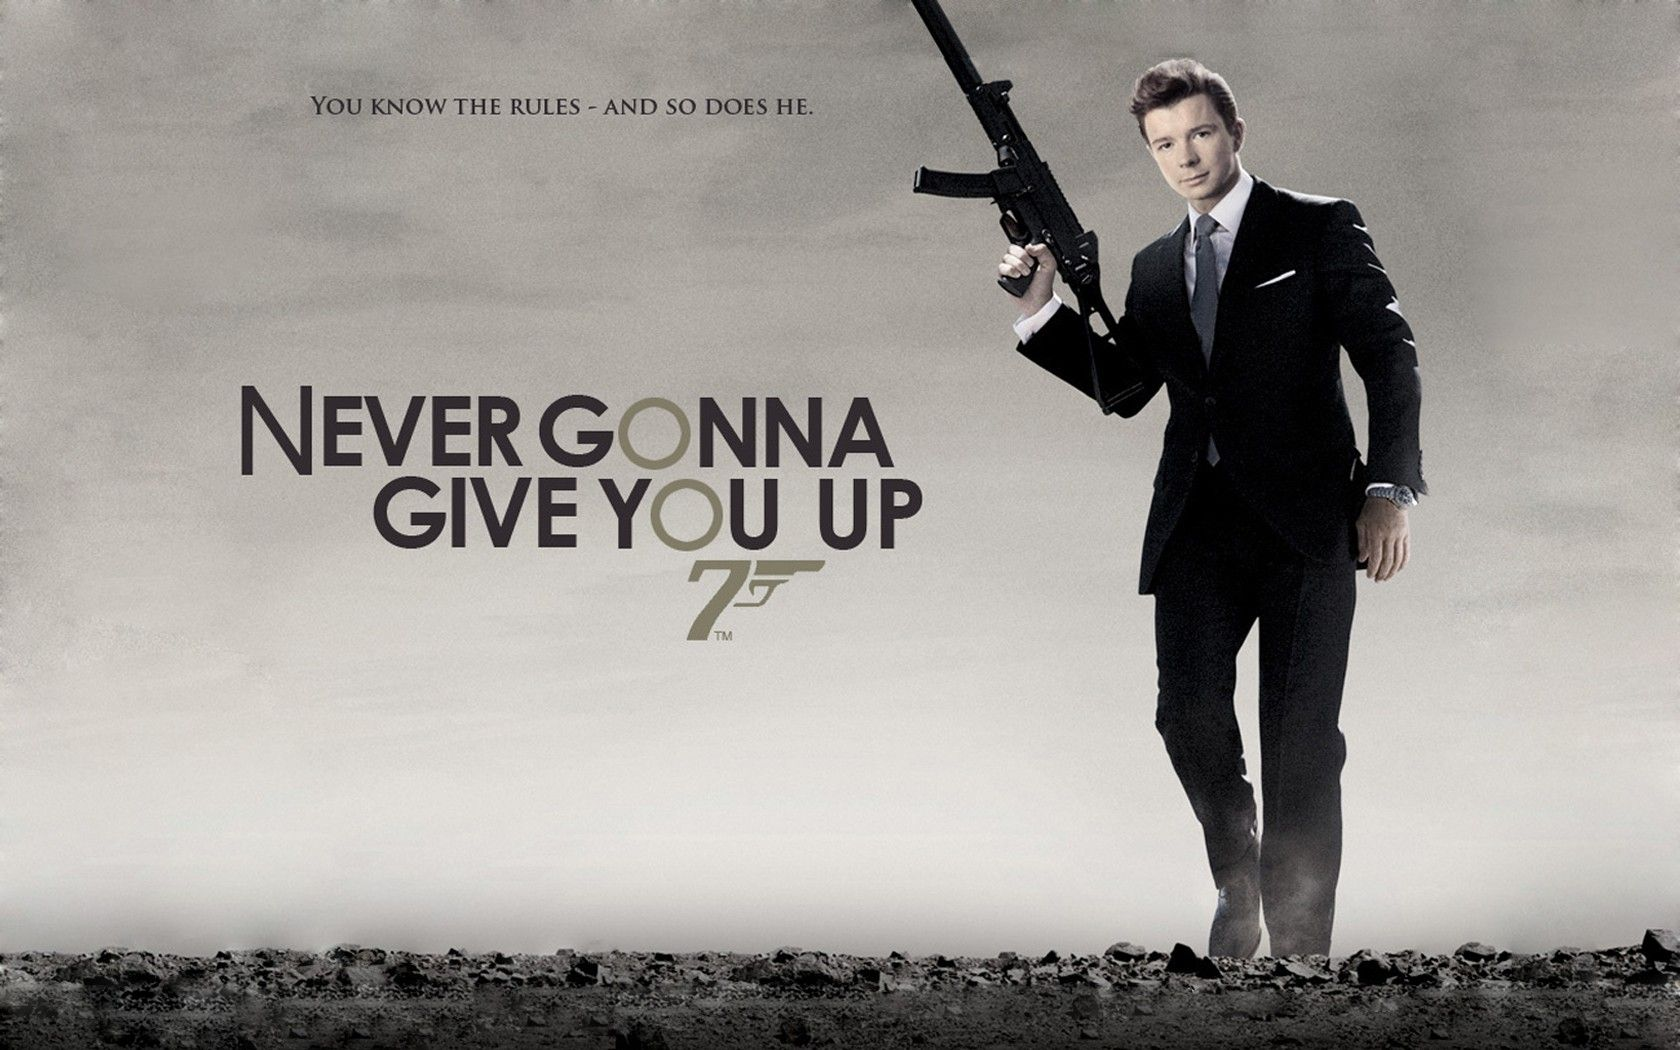 I Always Love How The Words Make The Logo Rick Astley Rick Astley Never Gonna James Bond Movie Posters